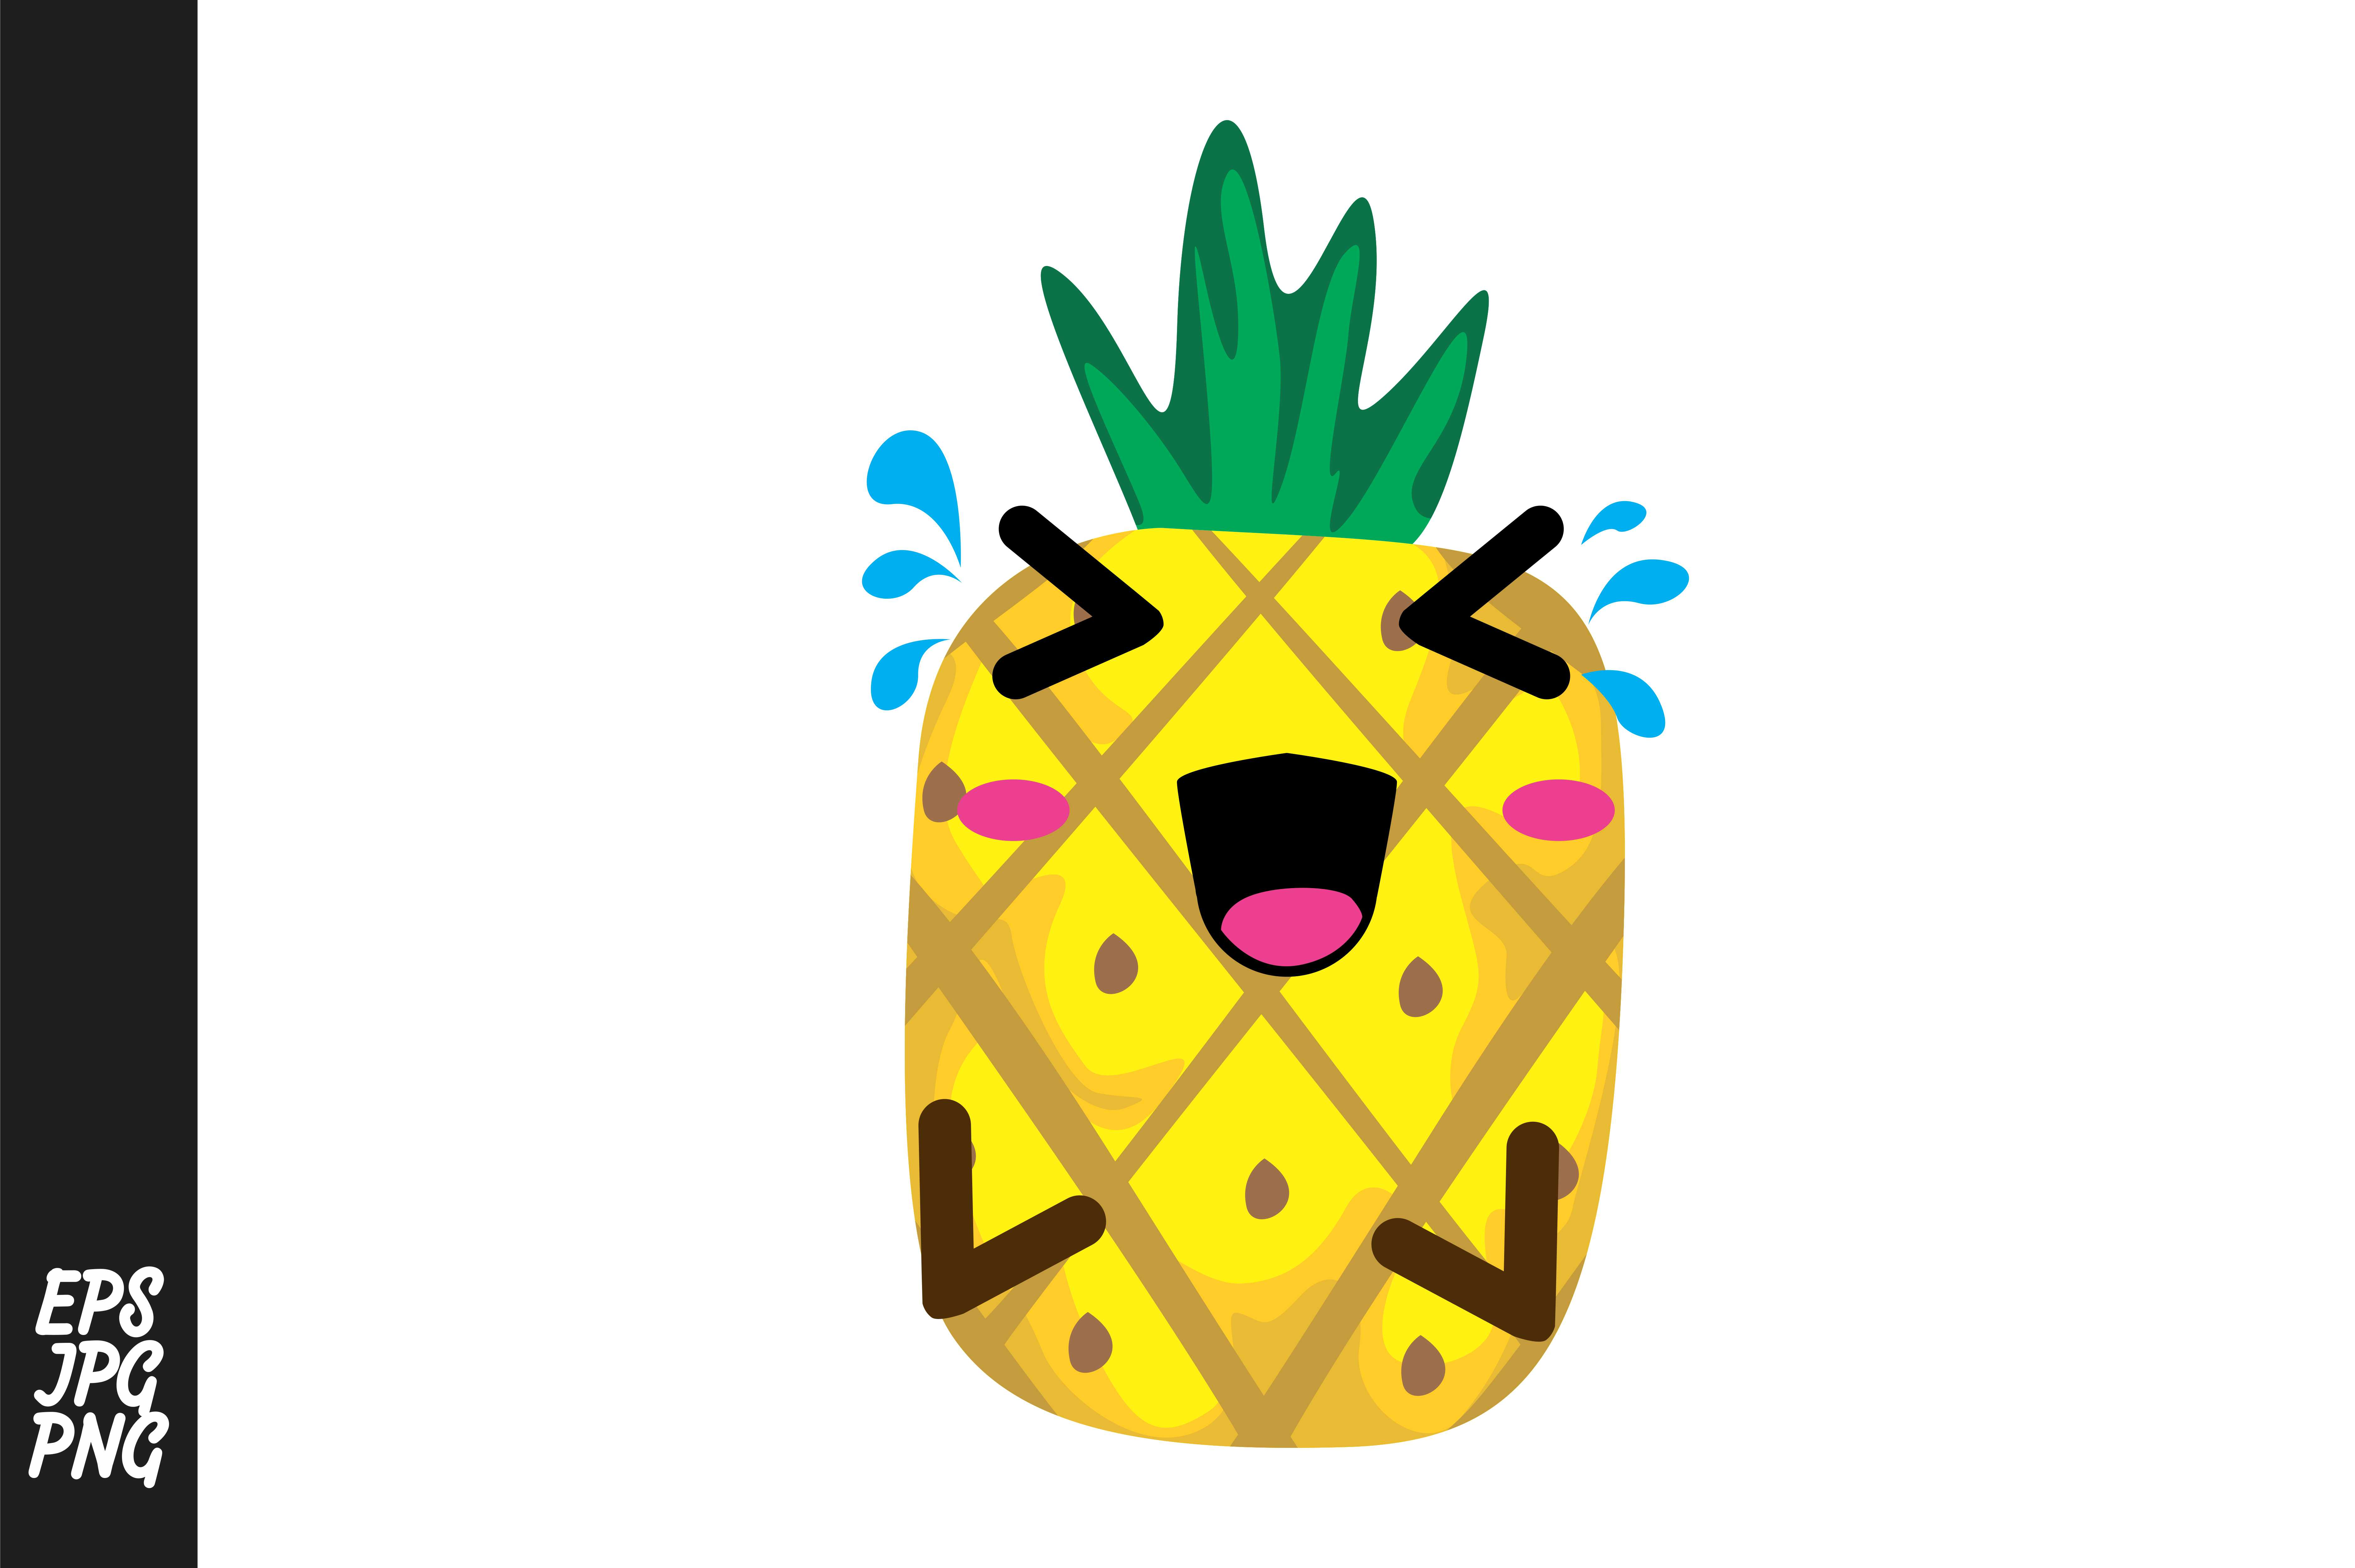 Download Free Cute Pineapple Cartoon Vector Graphic By Arief Sapta Adjie Ii for Cricut Explore, Silhouette and other cutting machines.